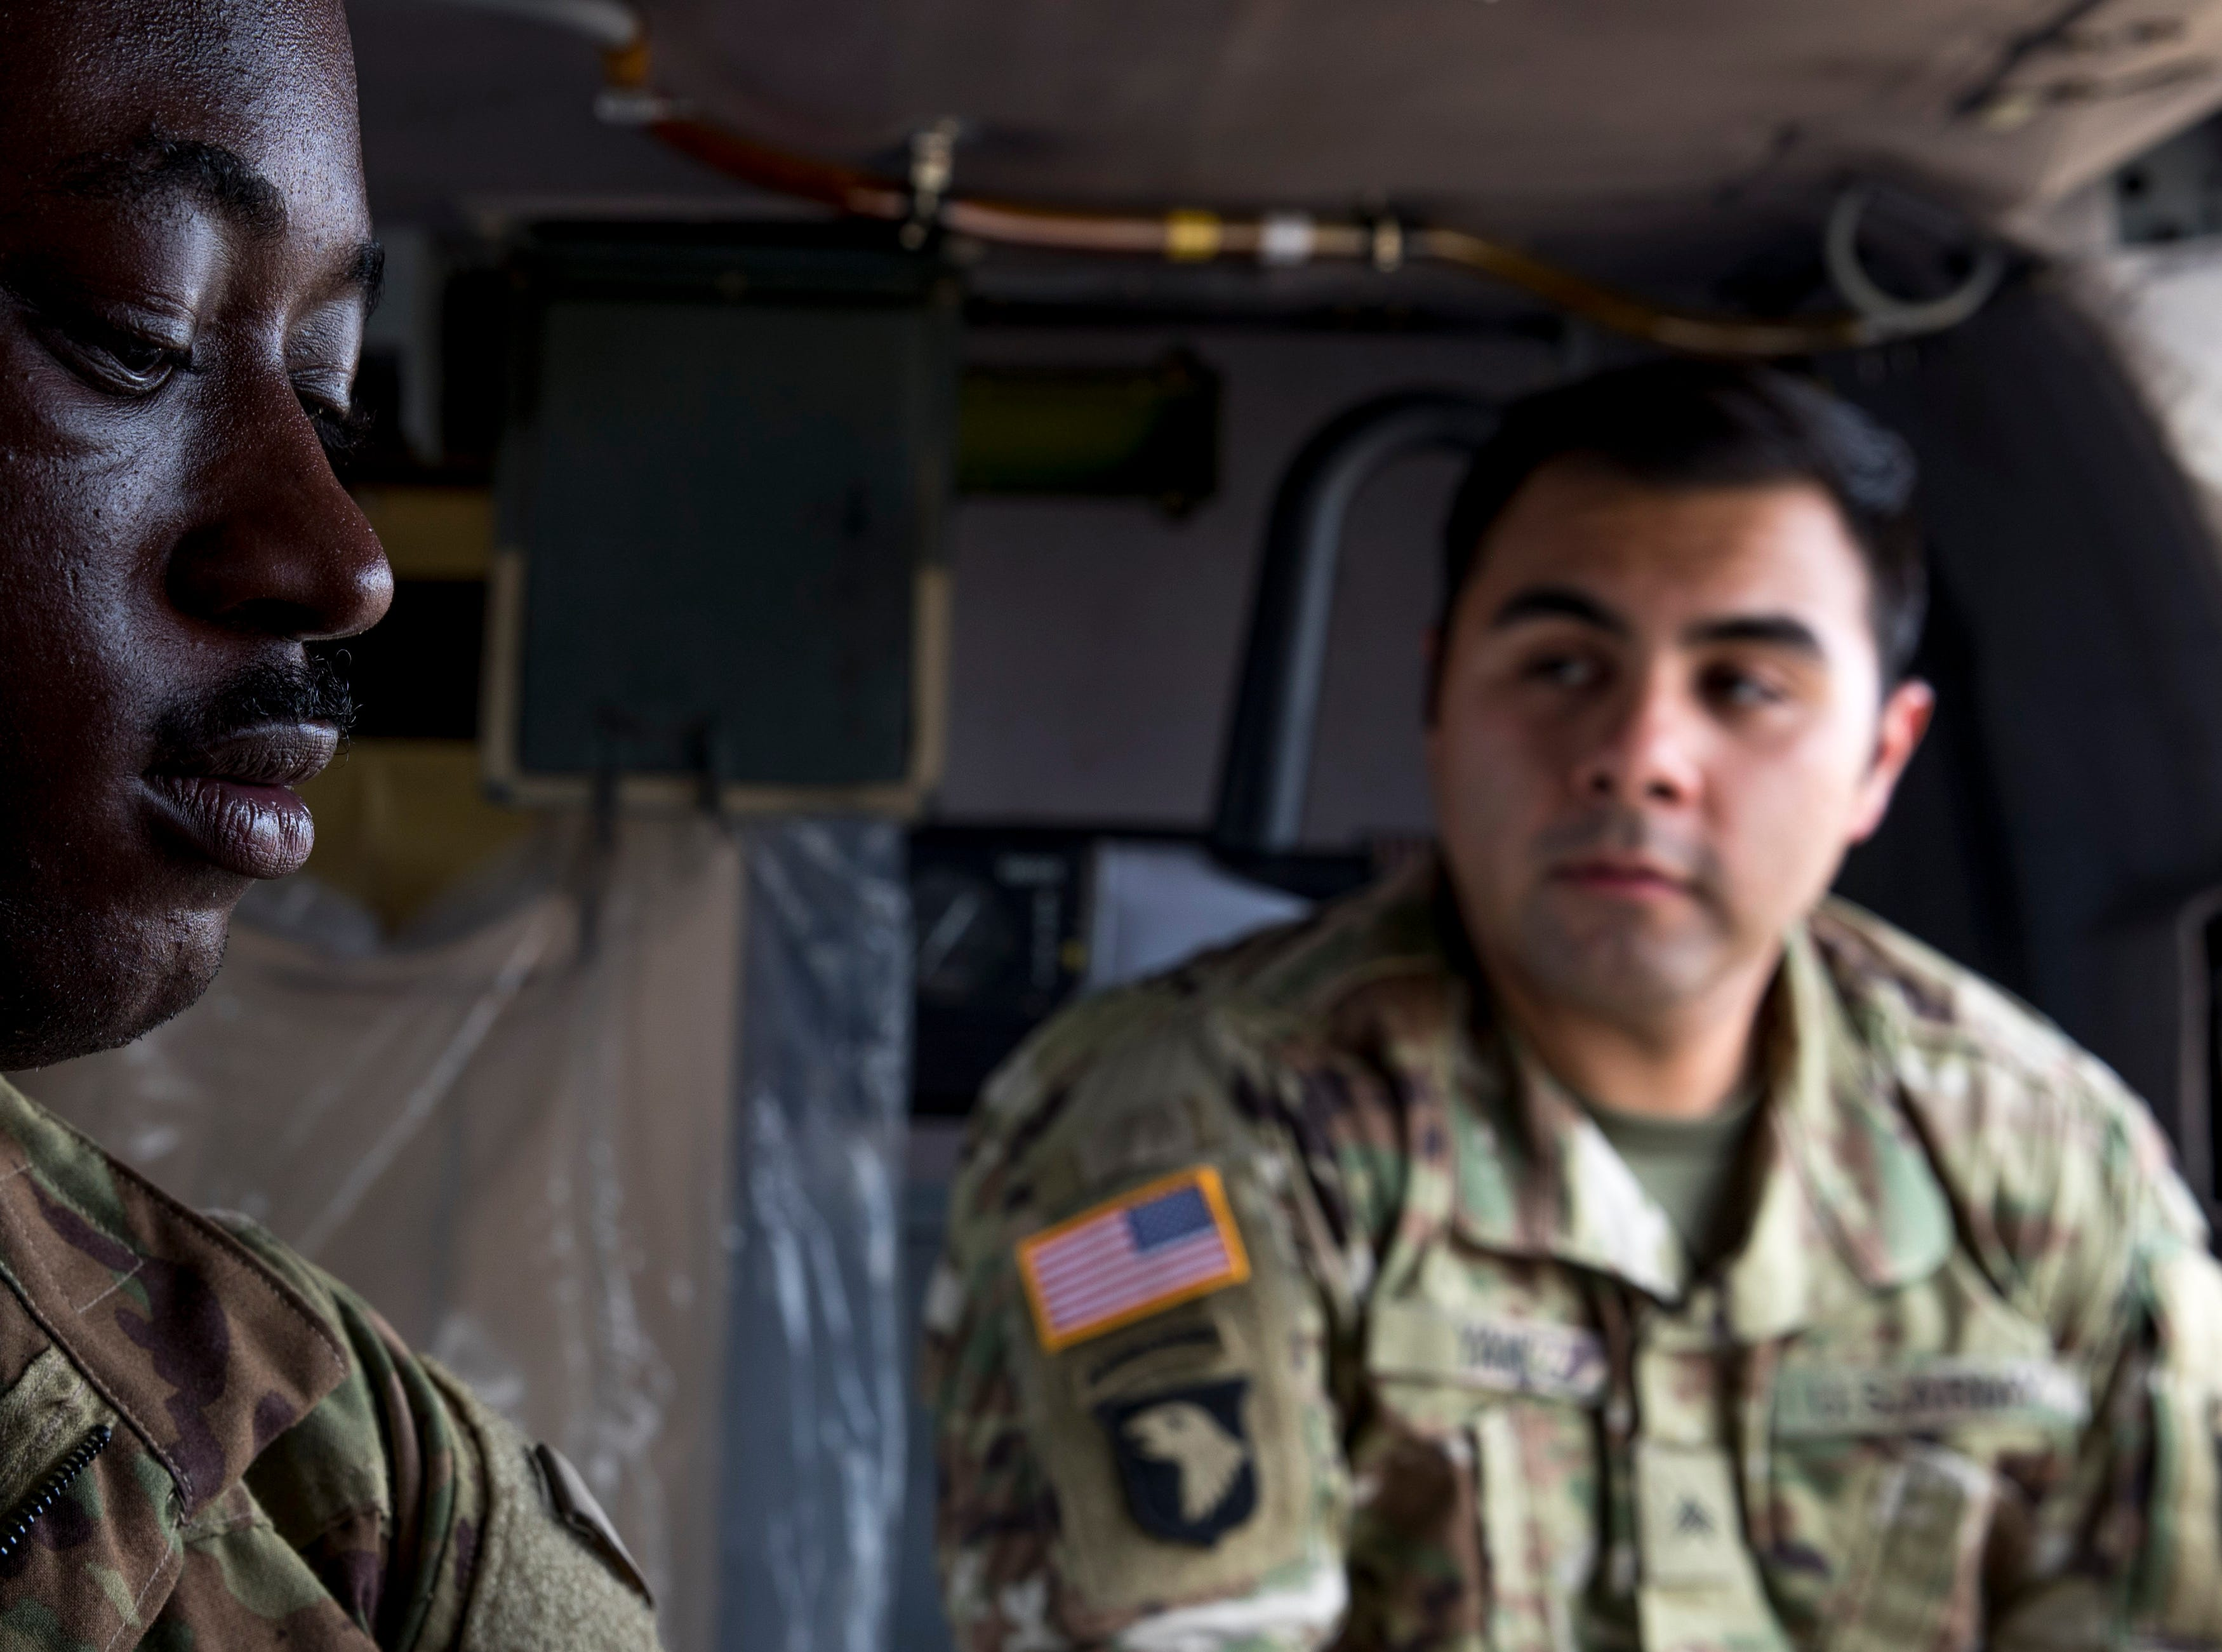 Sgt. Emmanuel Bynum, left, adjusts equipment inside a Black Hawk helicopter after sharing the story of his mission last year with Sgt. Armando Yanez.